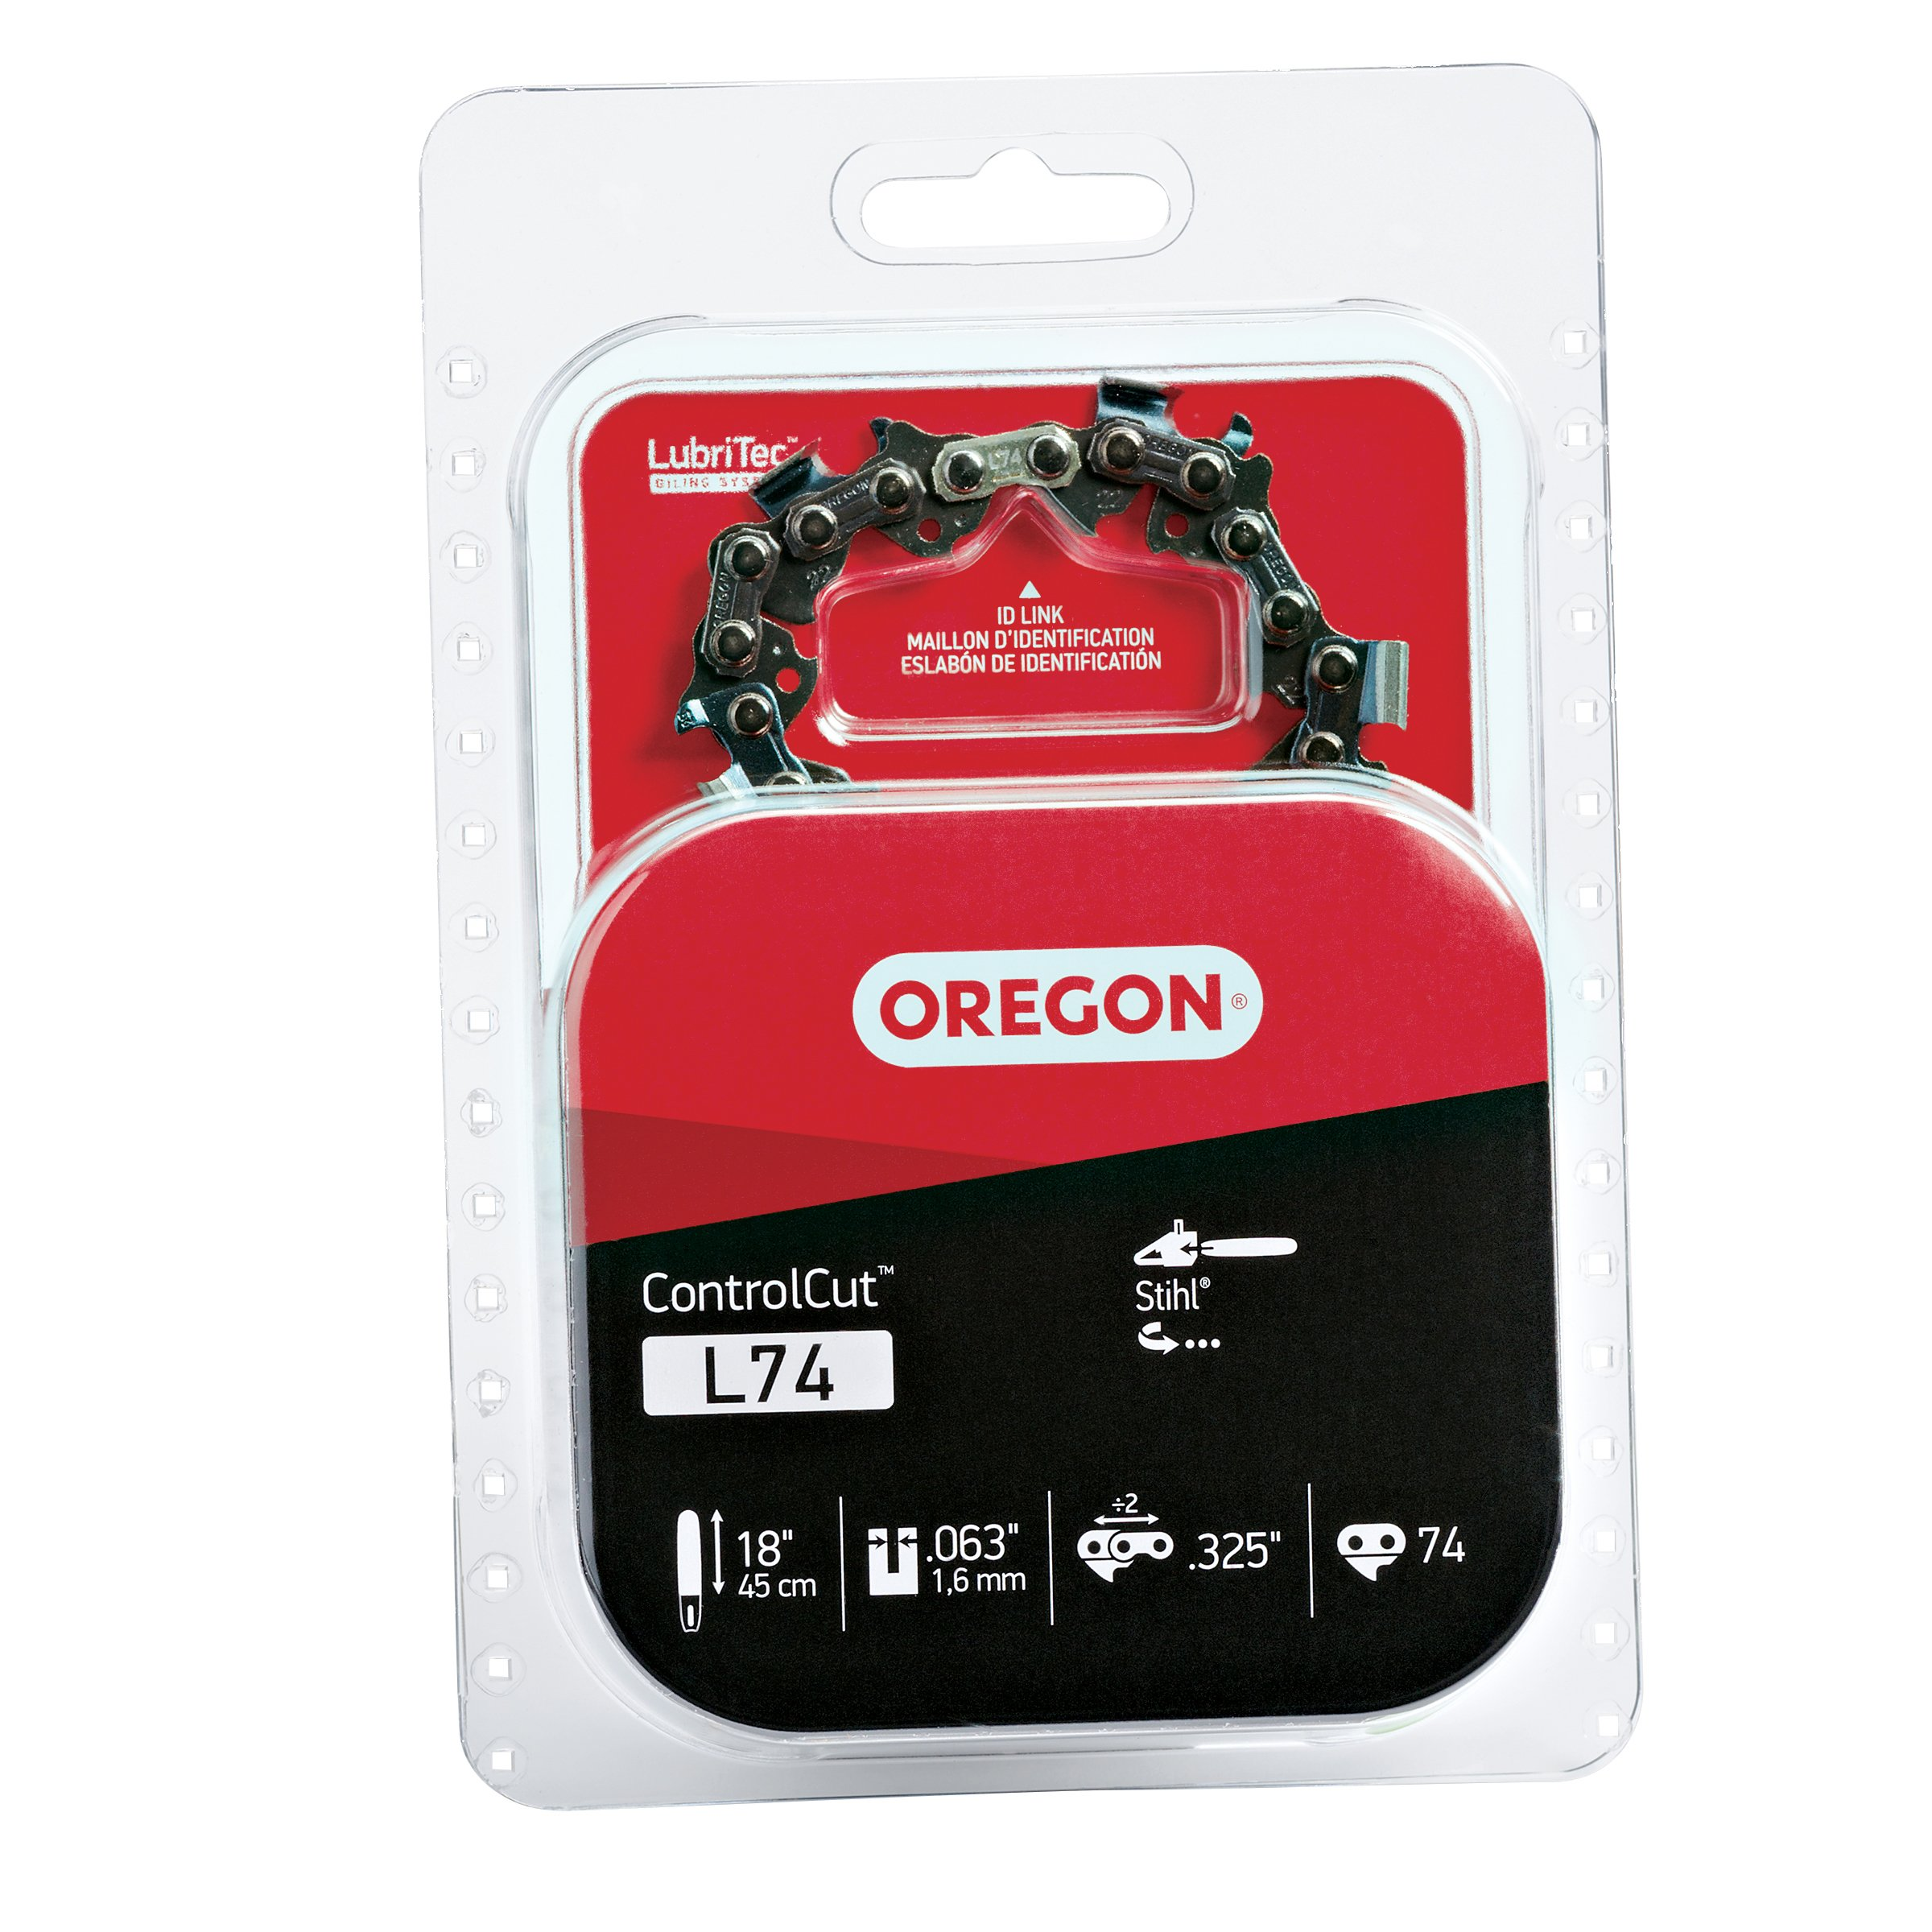 Oregon L74 ControlCut 18-Inch Chainsaw Chain Fits Stihl by Oregon